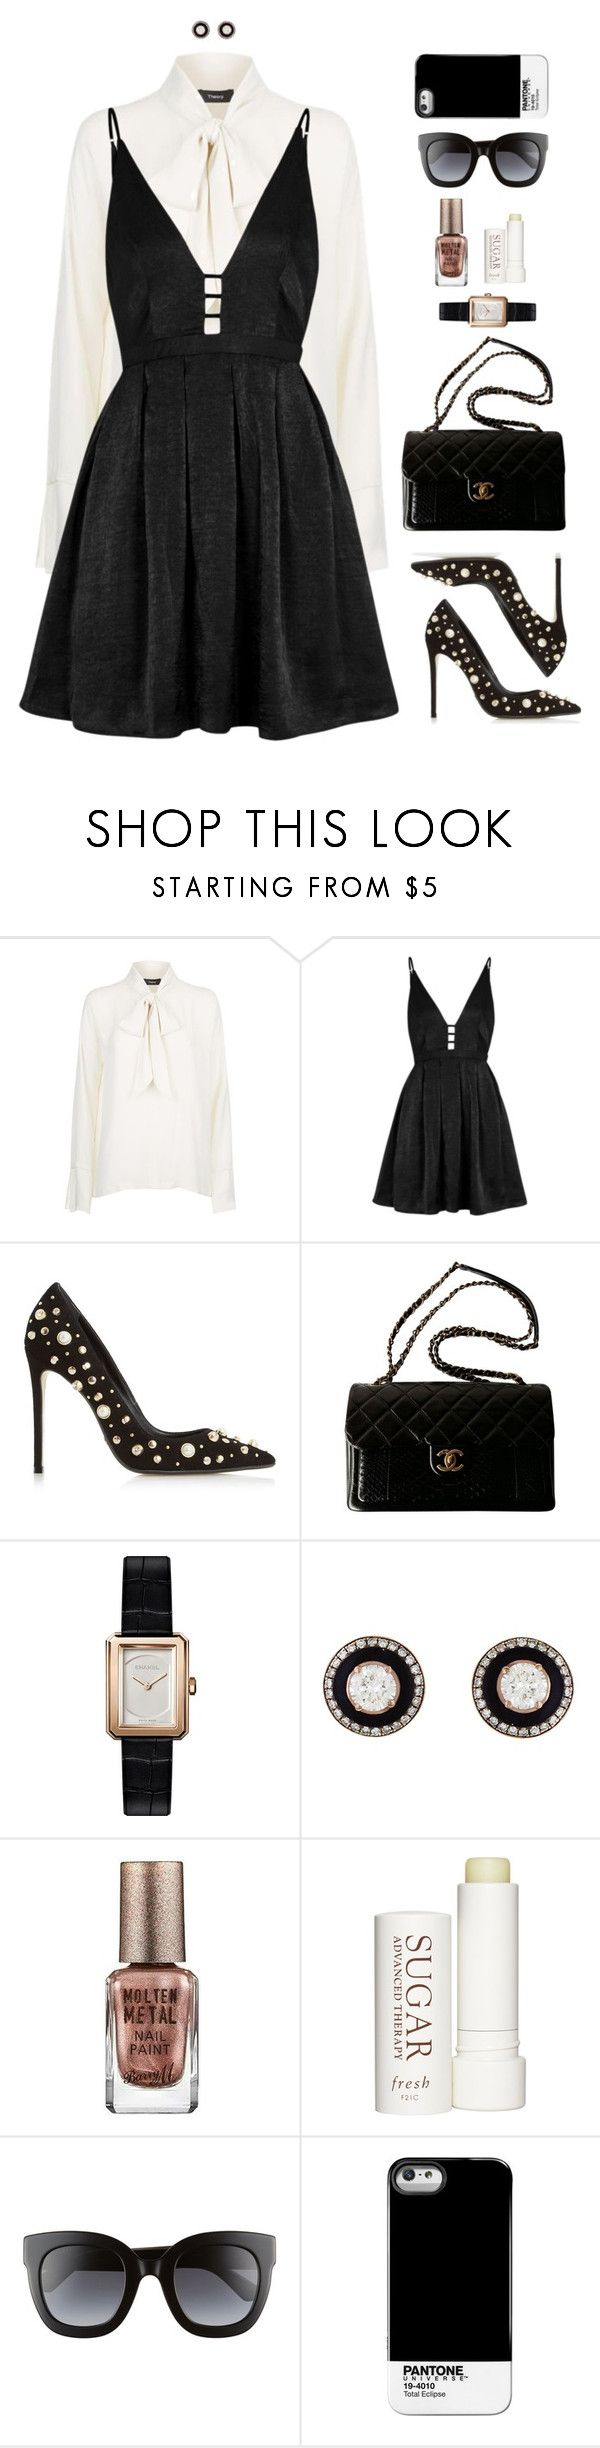 """""""Olivia"""" by xoxomuty on Polyvore featuring Free People, Dune Black, Chanel, Selim Mouzannar, Barry M, Therapy, Gucci, Pantone Universe, ootd and polyvoreOOTD"""